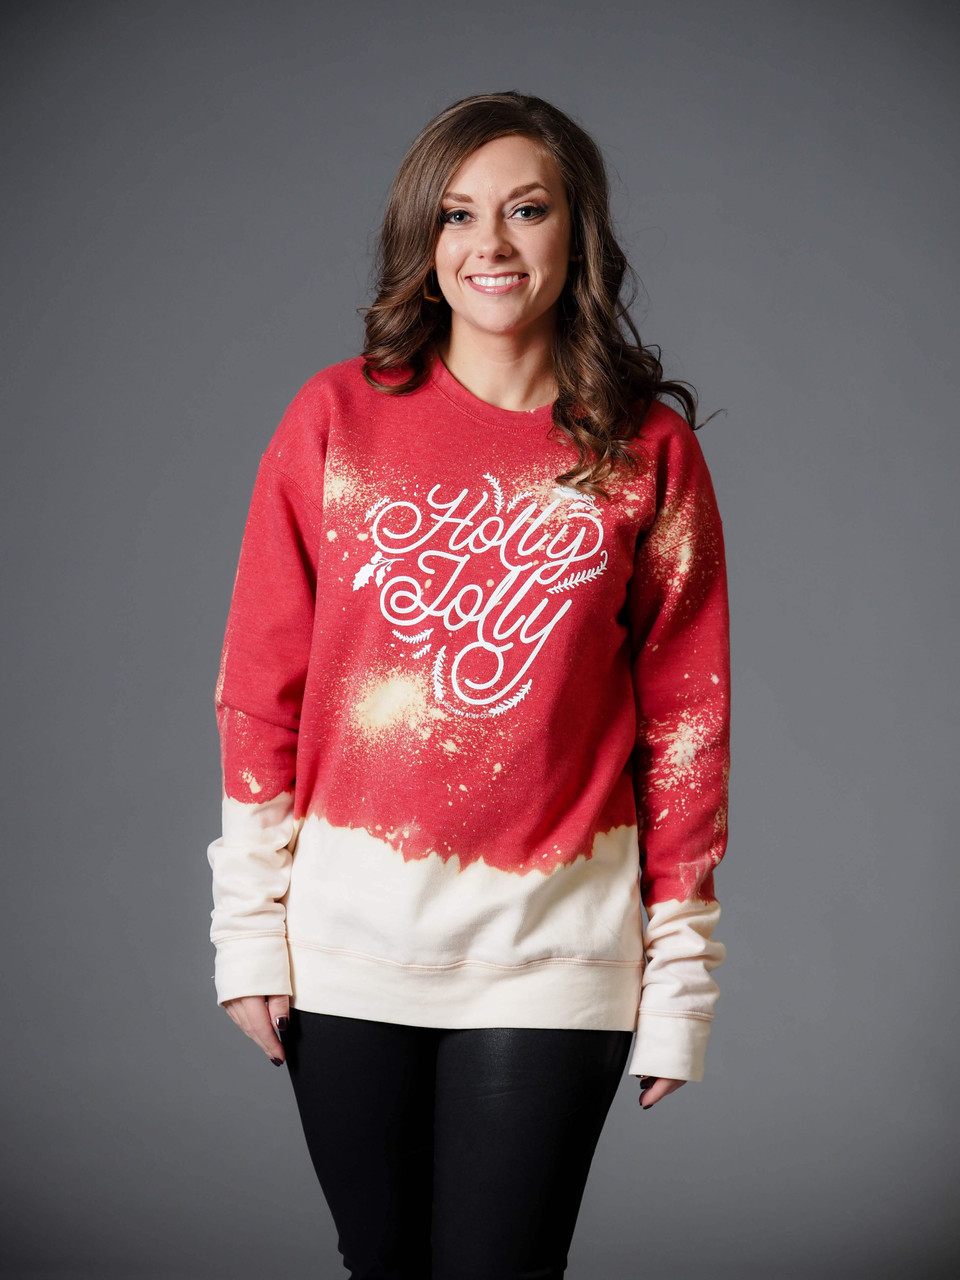 red oversized holly jolly sweatshirt